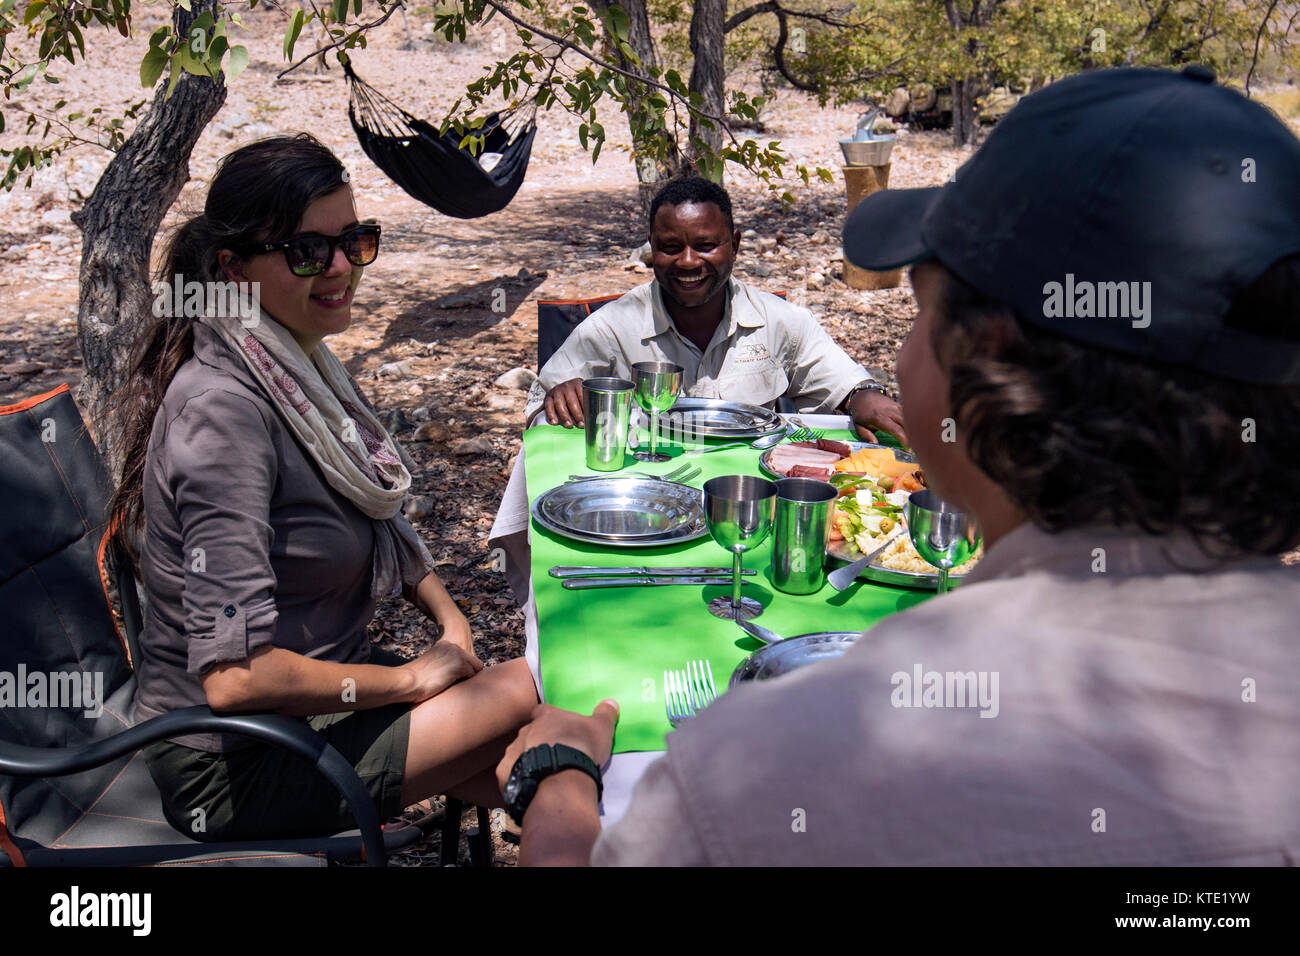 Couple enjoying picnic lunch at Huab Under Canvas, Damaraland, Namibia, Africa - Stock Image